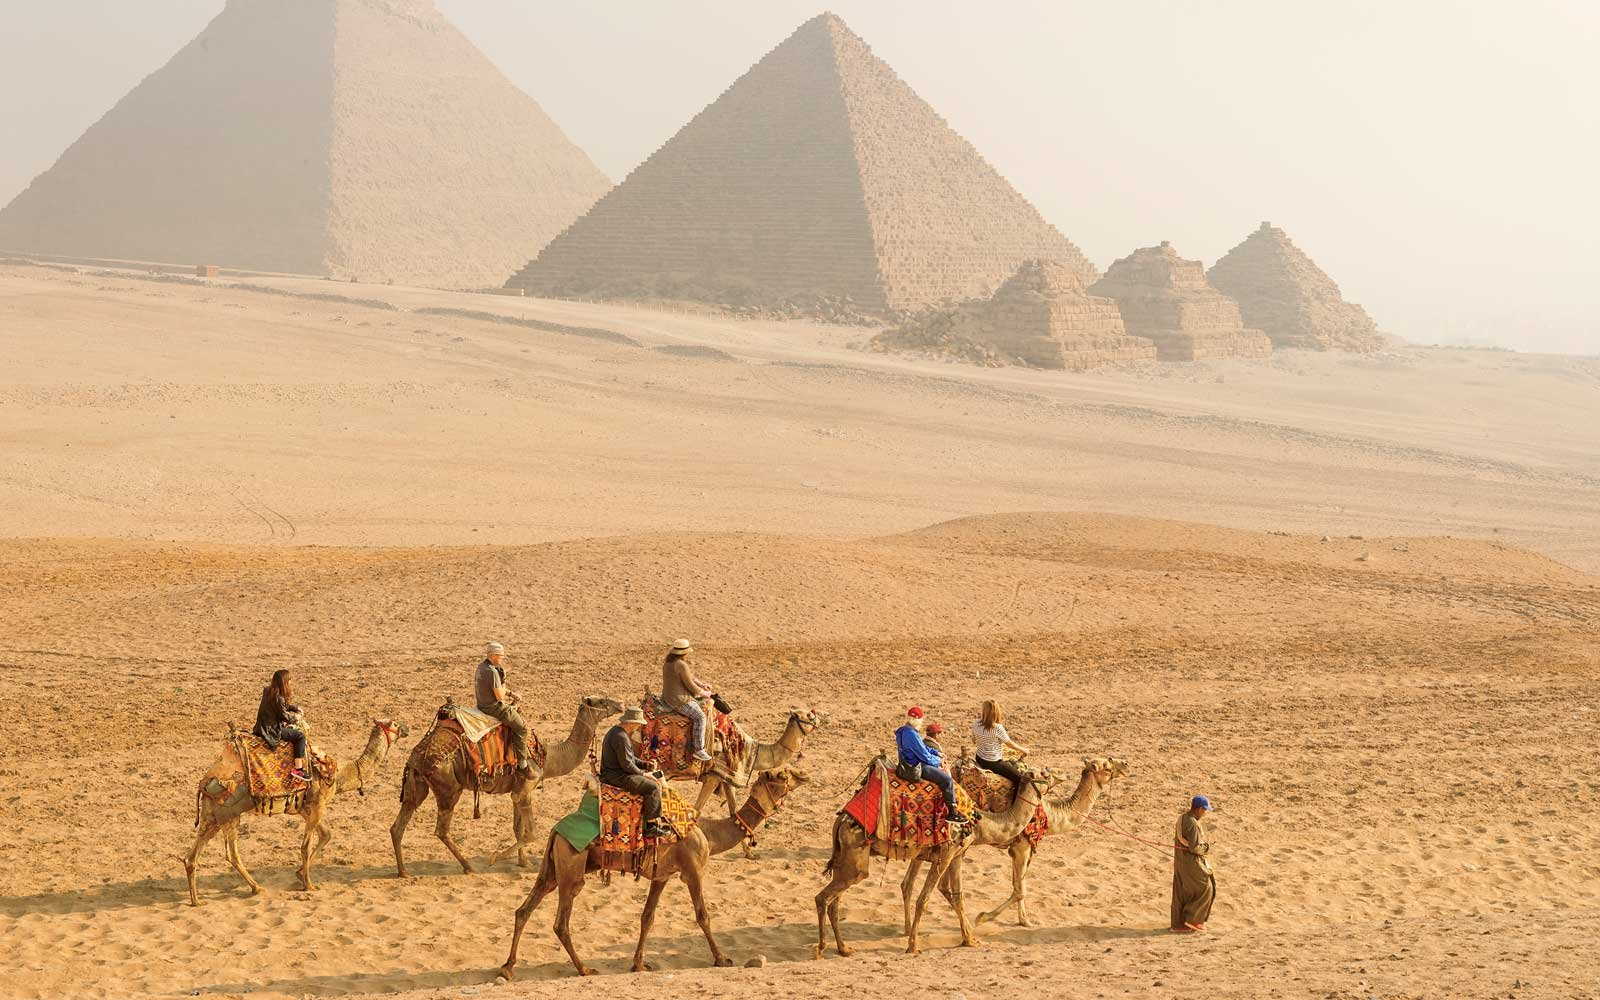 Great Pyramids of Giza, in Egypt